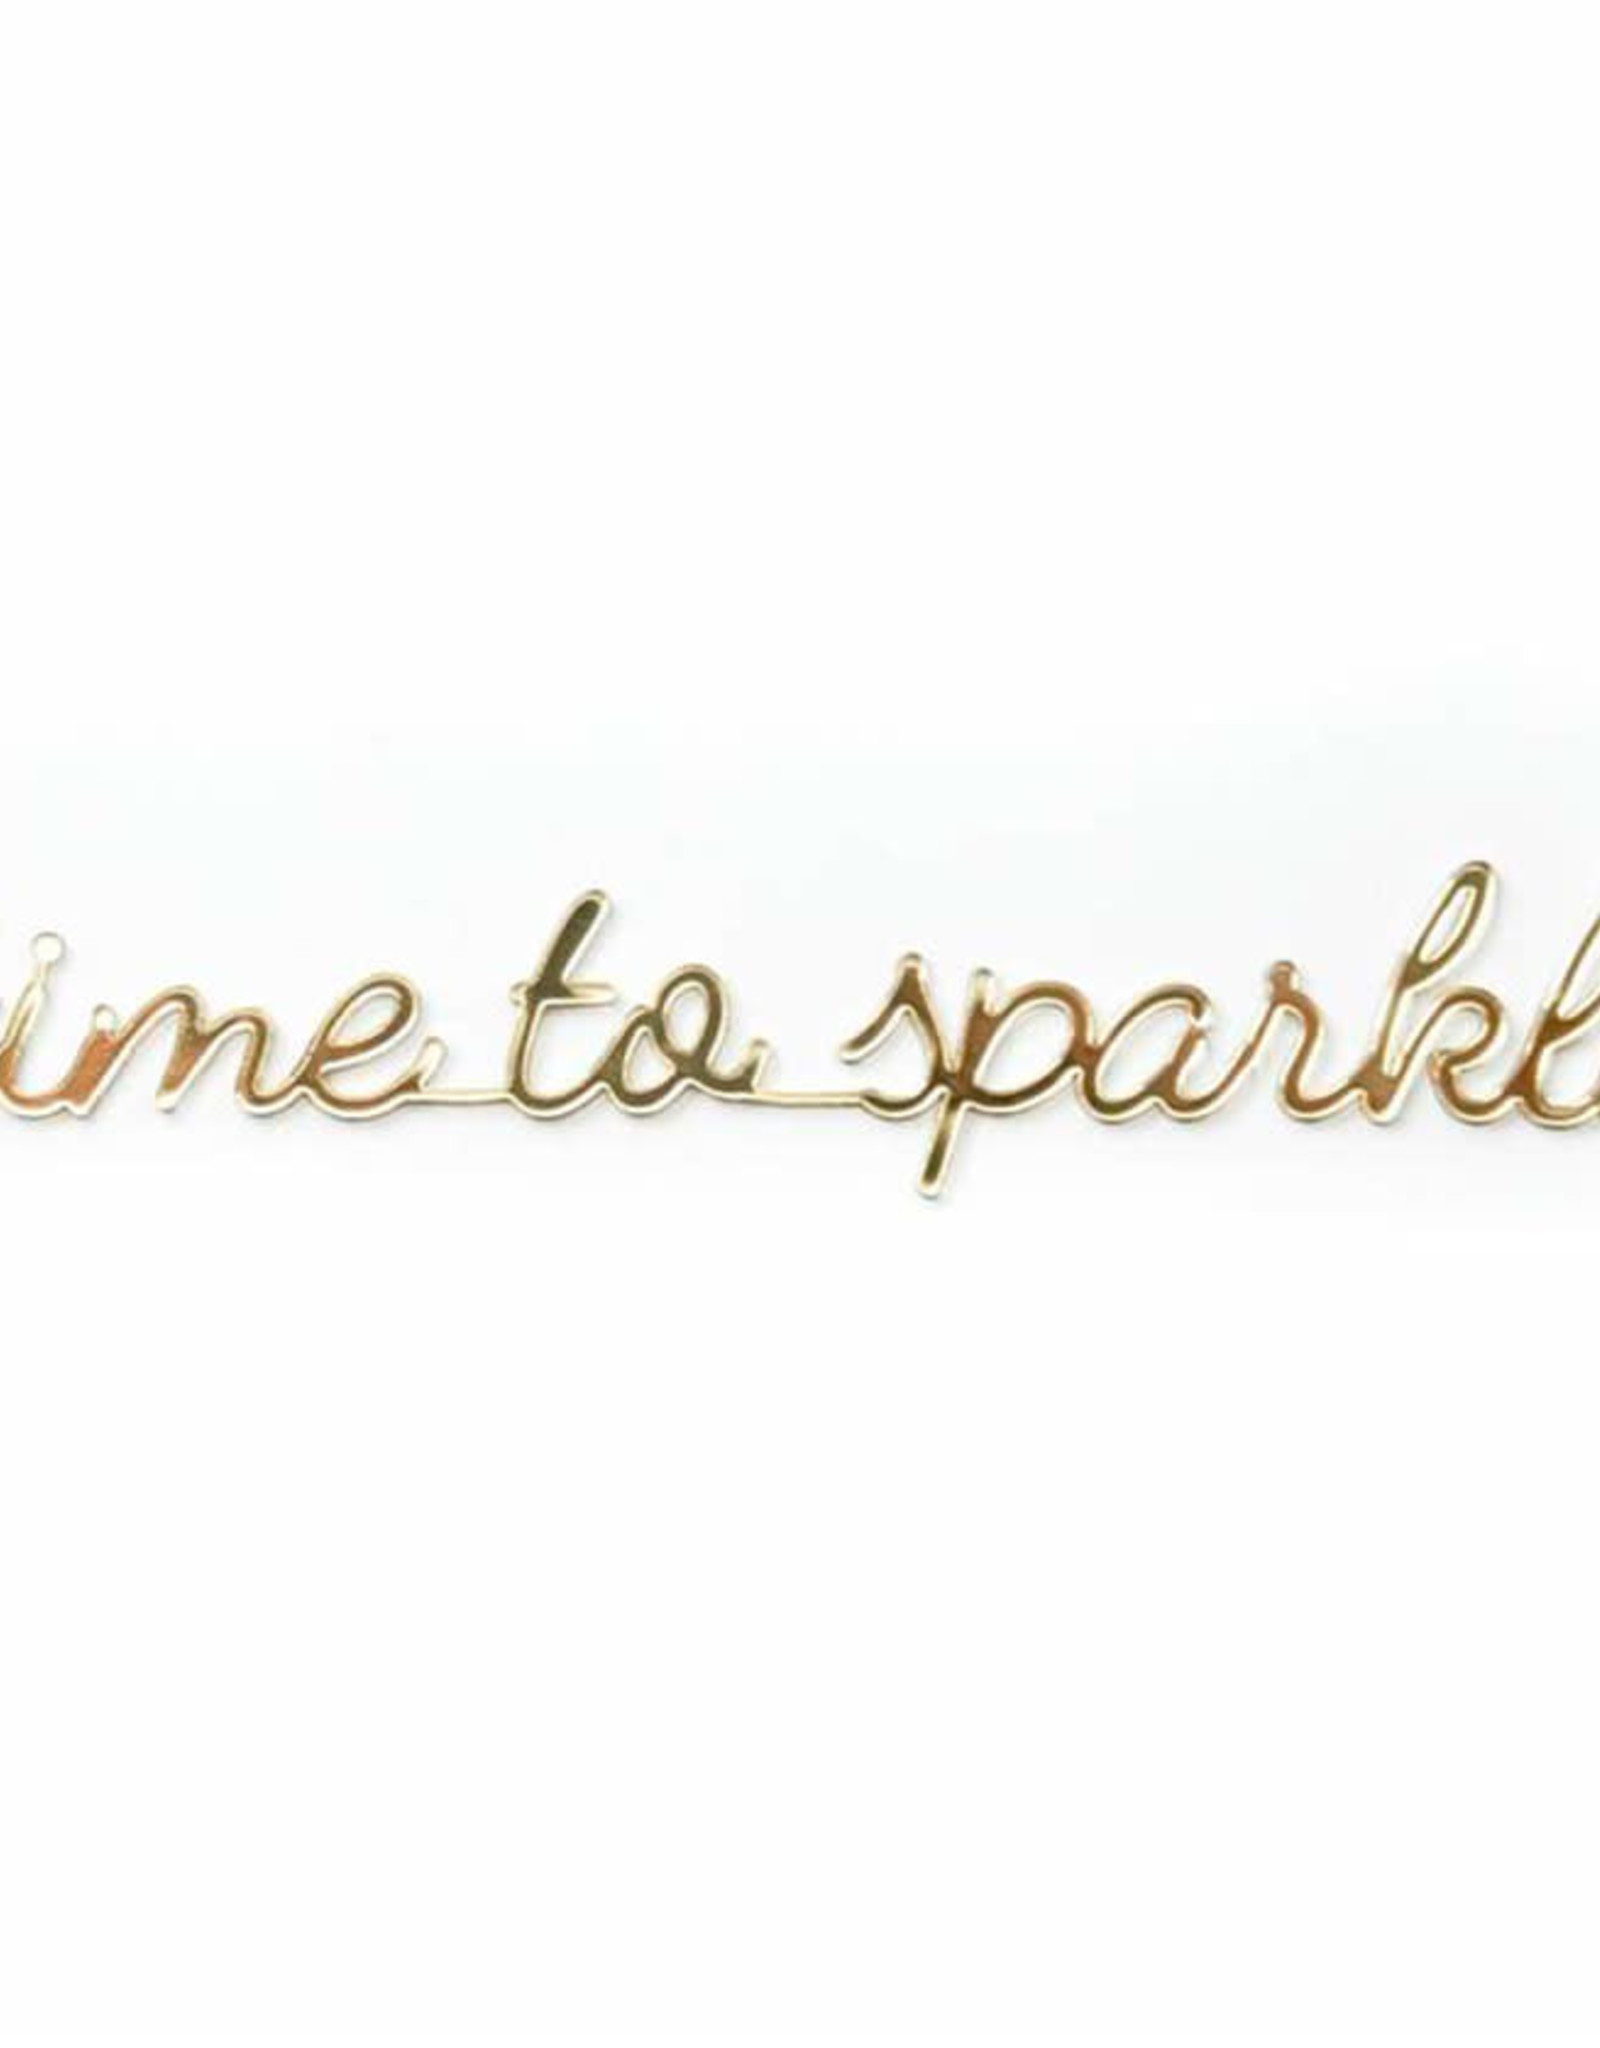 Goegezegd Quote Time to Sparkle-gold